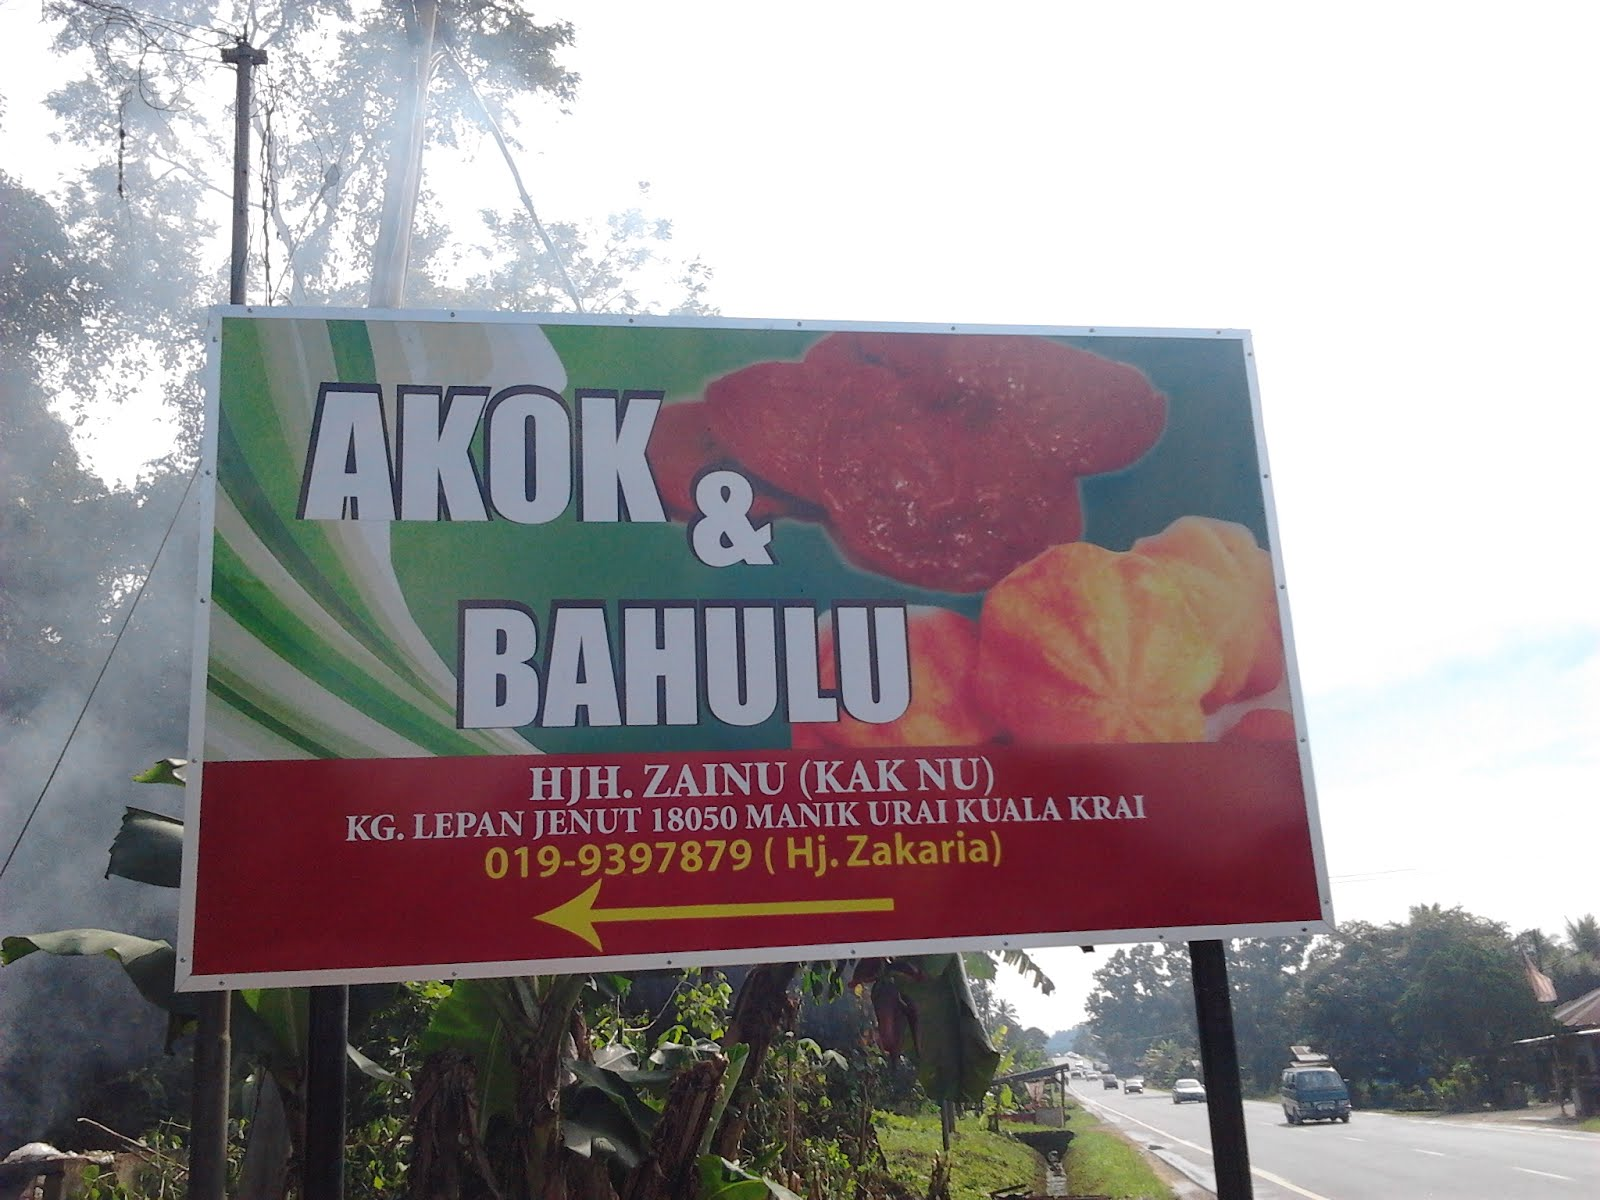 Kedai Akok Sri Jenut